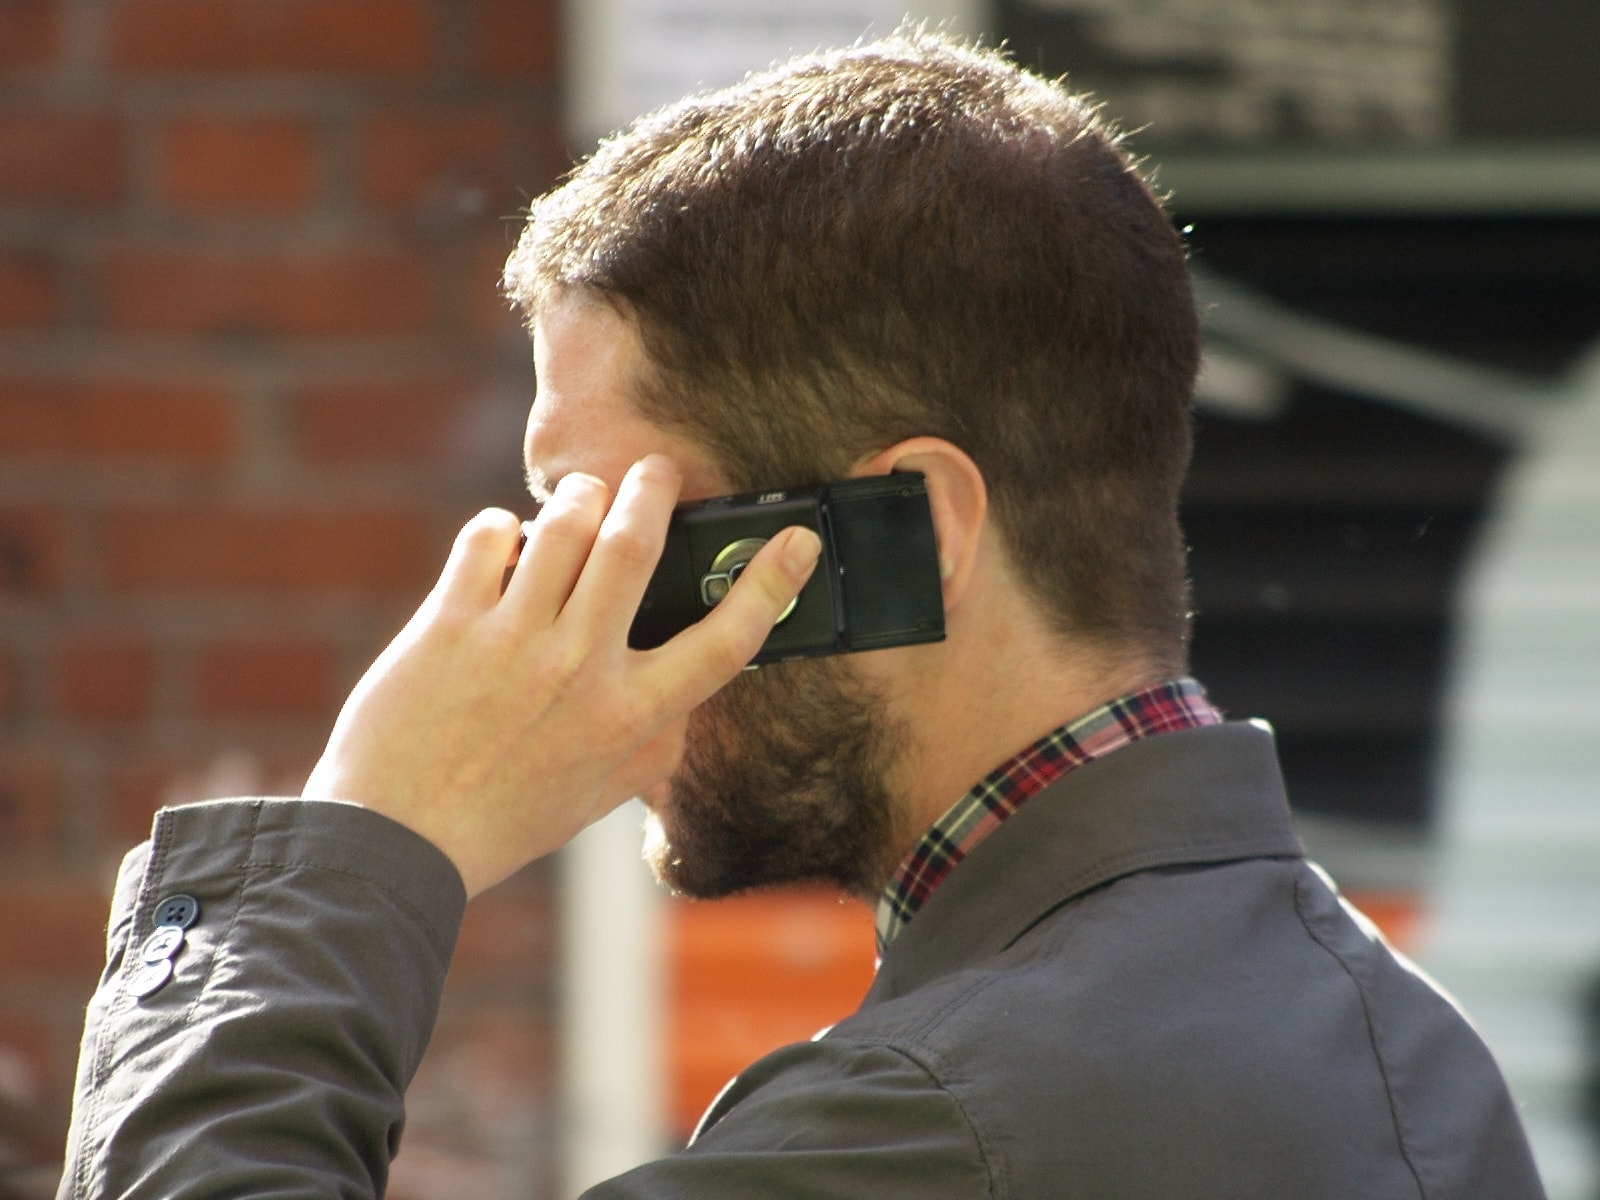 Which Mobile Radiation Level is Harmful to our Health